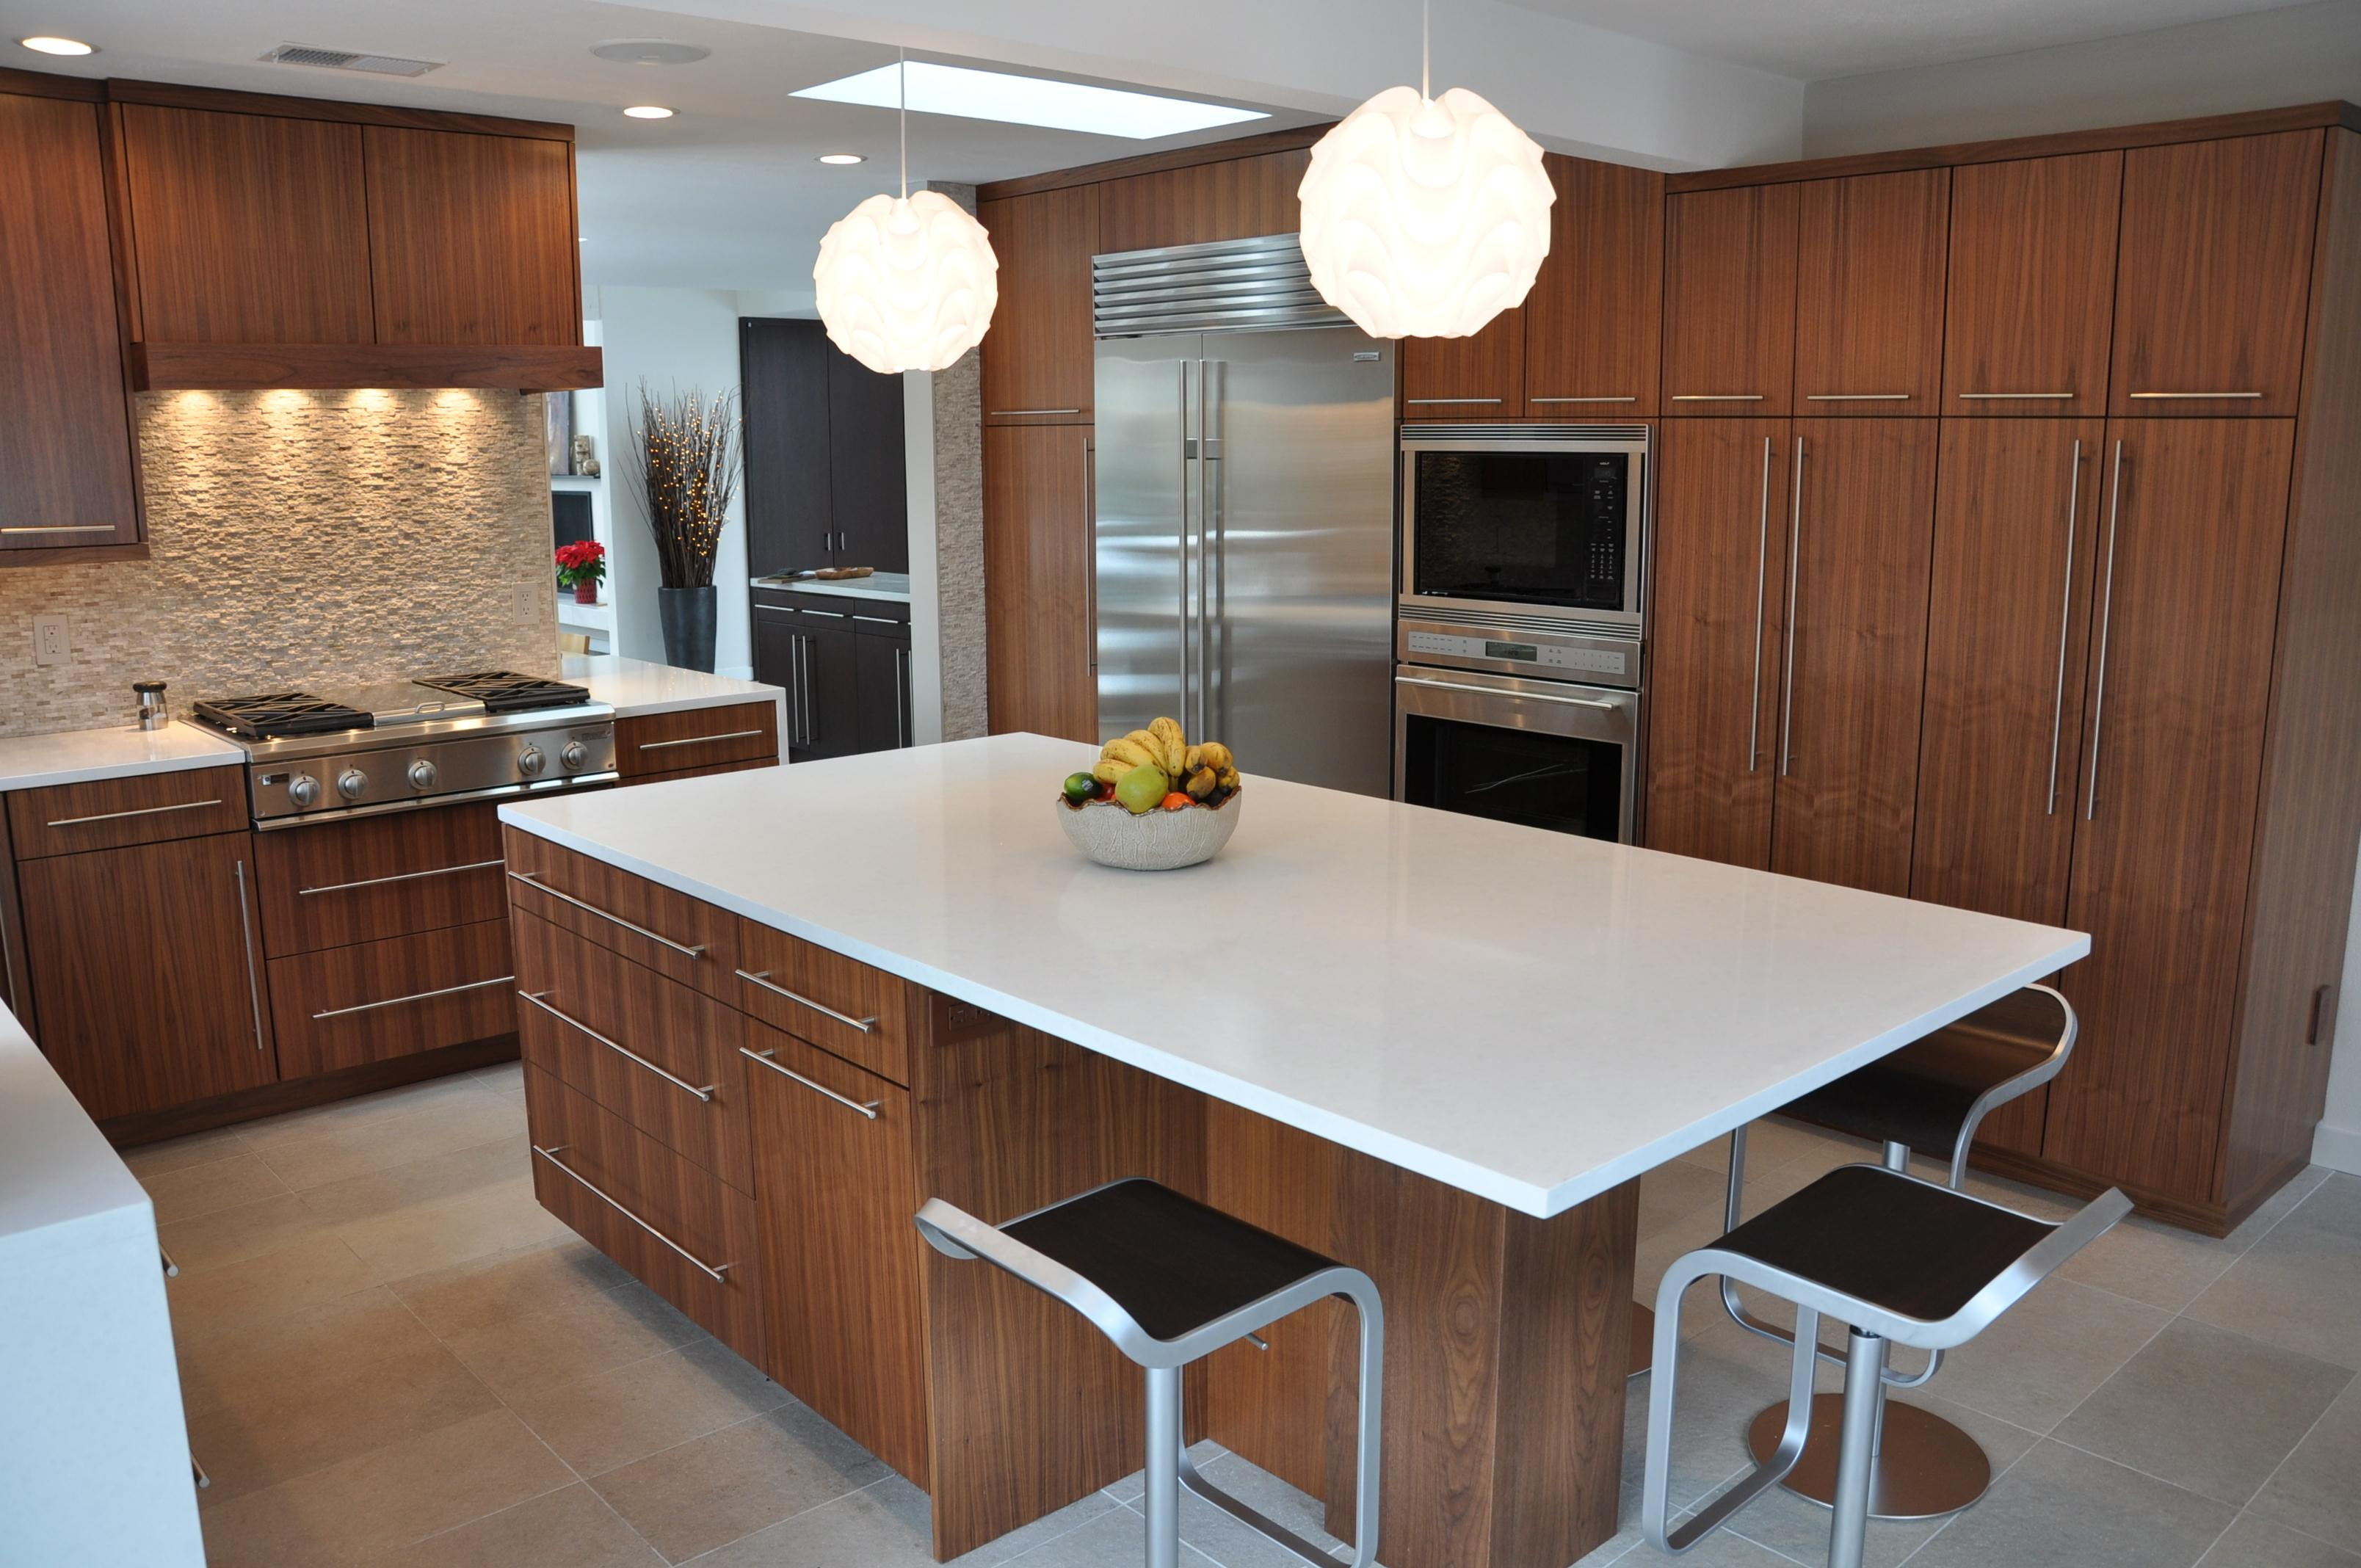 Best Kitchen Gallery: Custom Solutions For Designers' Visions Grabill Cabi S of Grabill Kitchen Cabinets on cal-ite.com